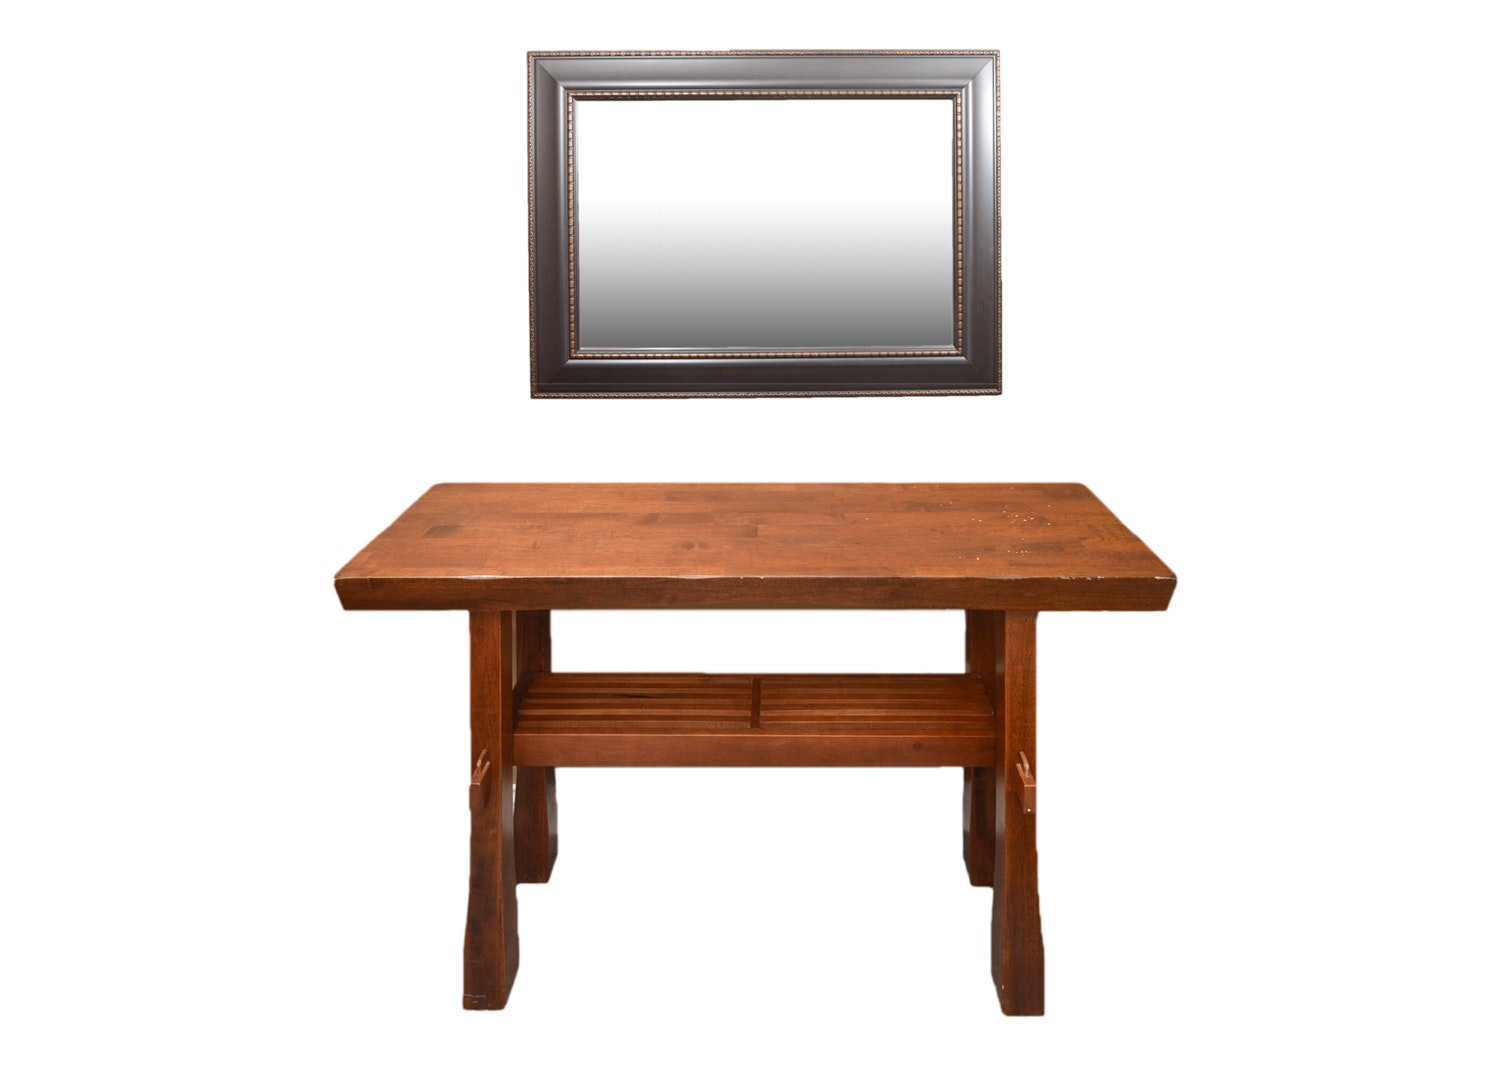 Contemporary Arts and Crafts Style Sofa Table with Rectangular Wall Hang Mirror